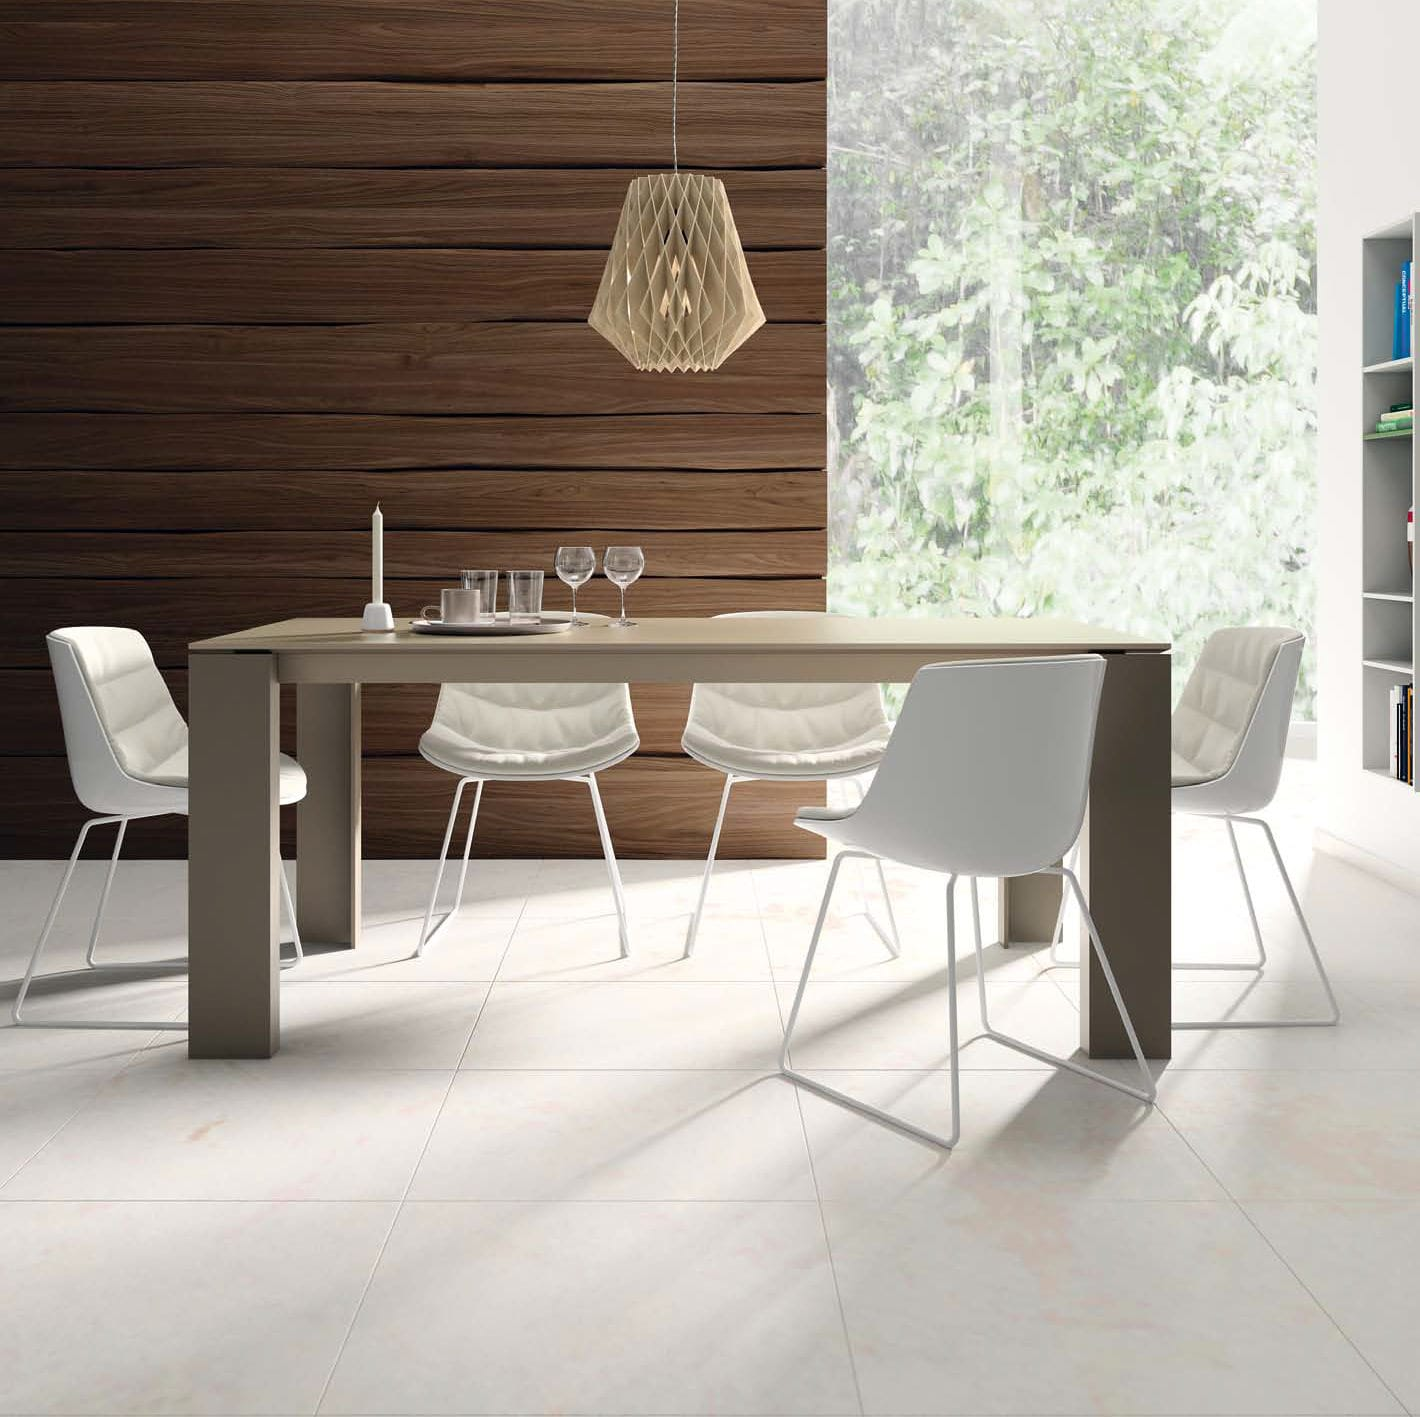 Only Muebles Contemporary Dining Table Wooden Ceramic Lacquered Glass T03 Vive Muebles Verge S L